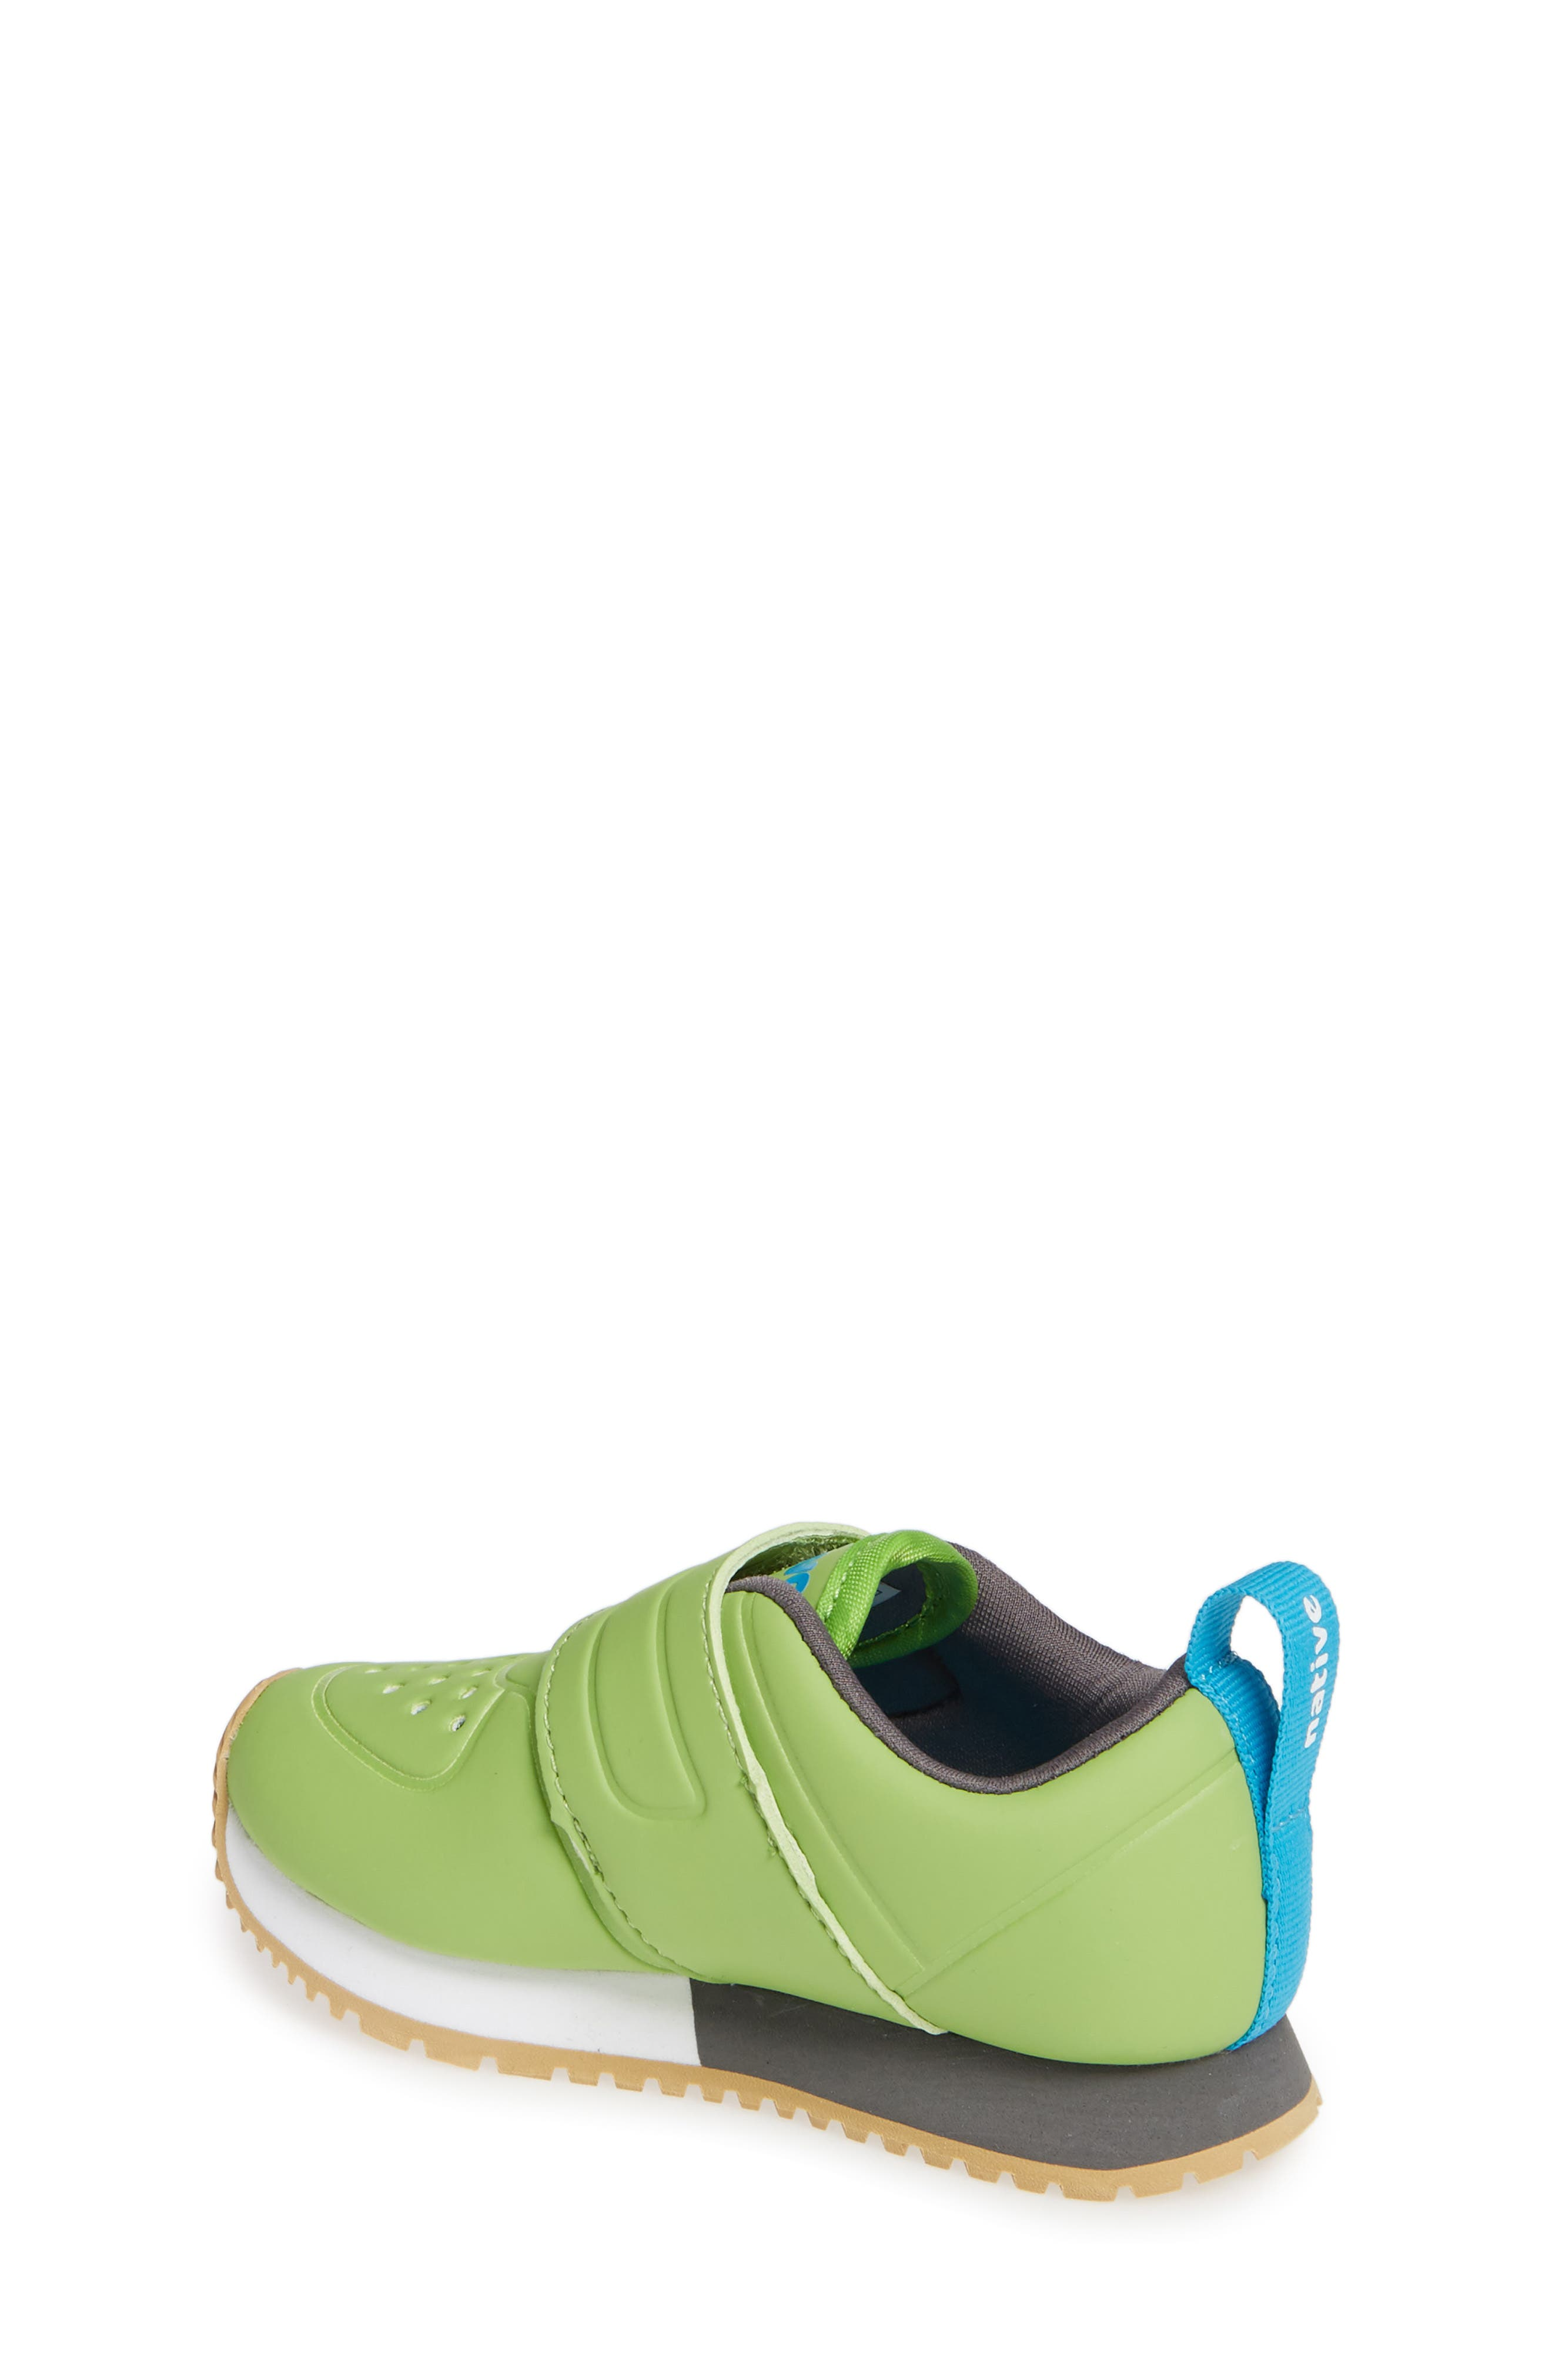 Cornell Perforated Colorblock Sneaker,                             Alternate thumbnail 2, color,                             SPRING GREEN/ WHITE/ GREY